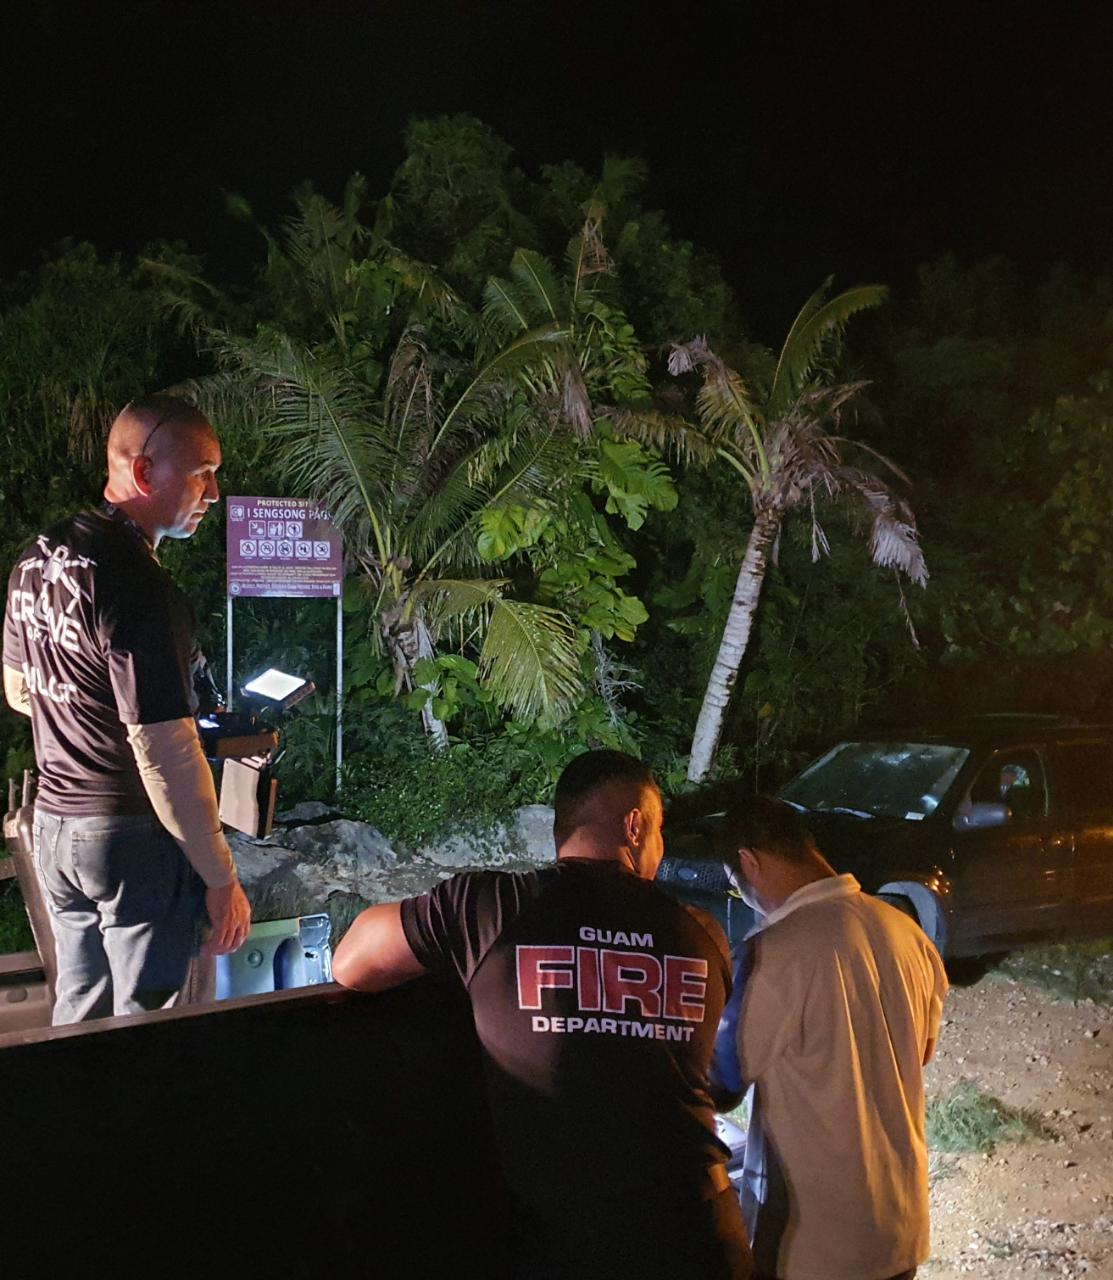 Just before 10 p.m. July 25, Guam Fire Department received a call for a missing hiker in the Pågat Cave area, according to spokesperson Kevin Reilly. The man was found safe Sunday morning.